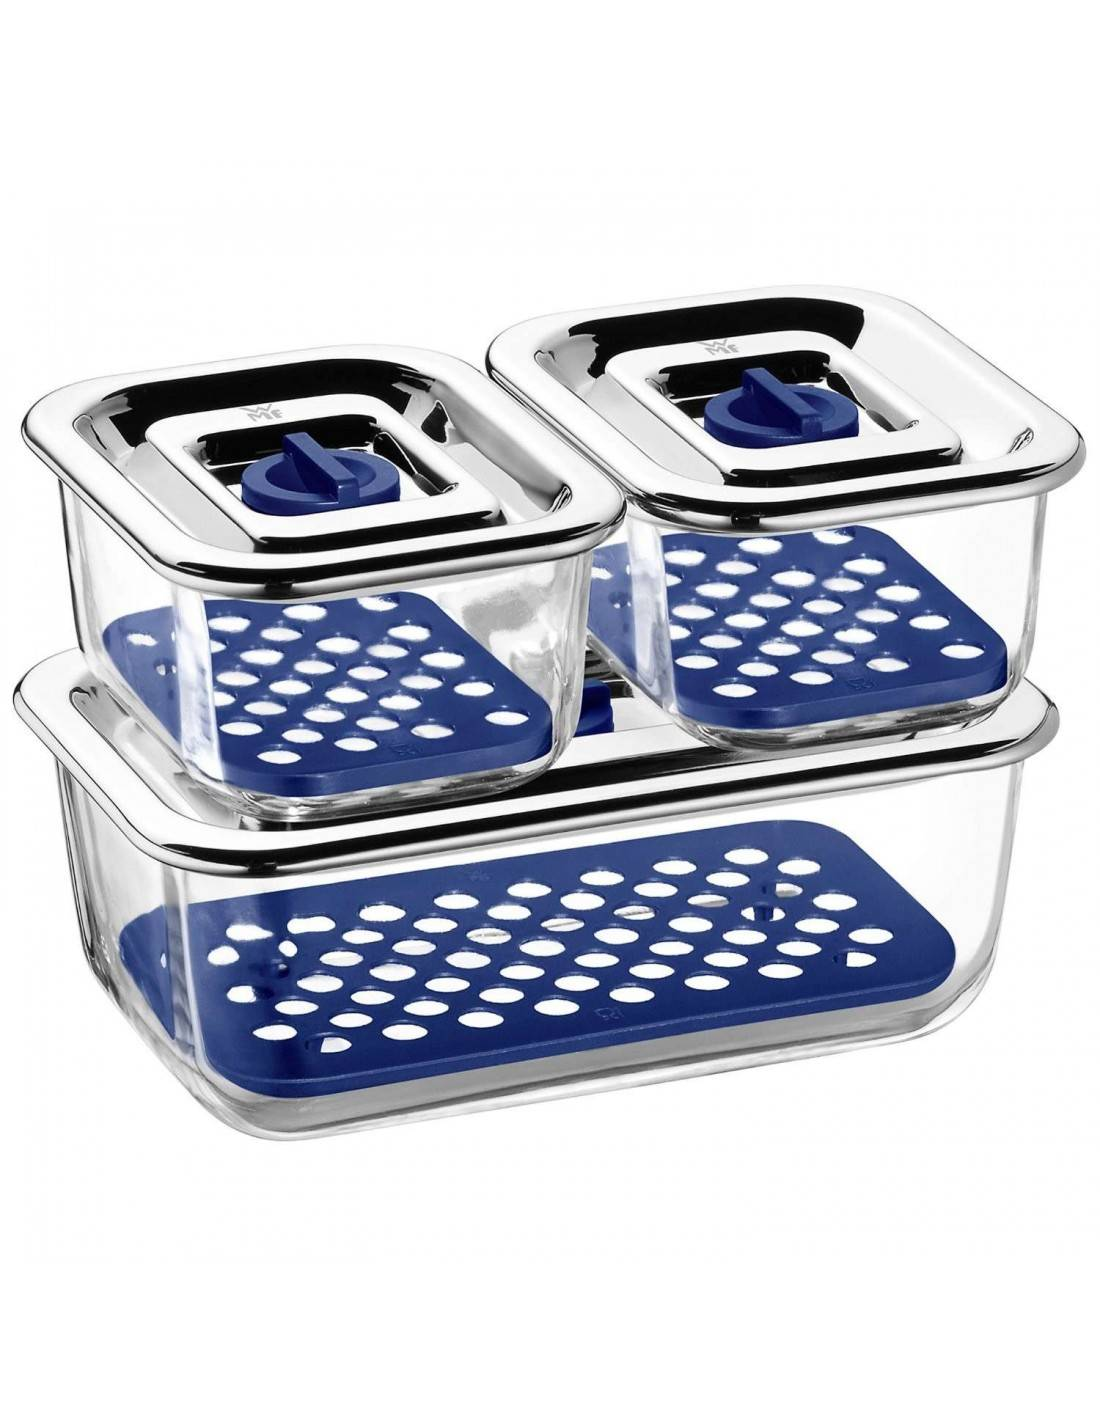 Wmf Top Serve Storage And Serving Containers With Drainage